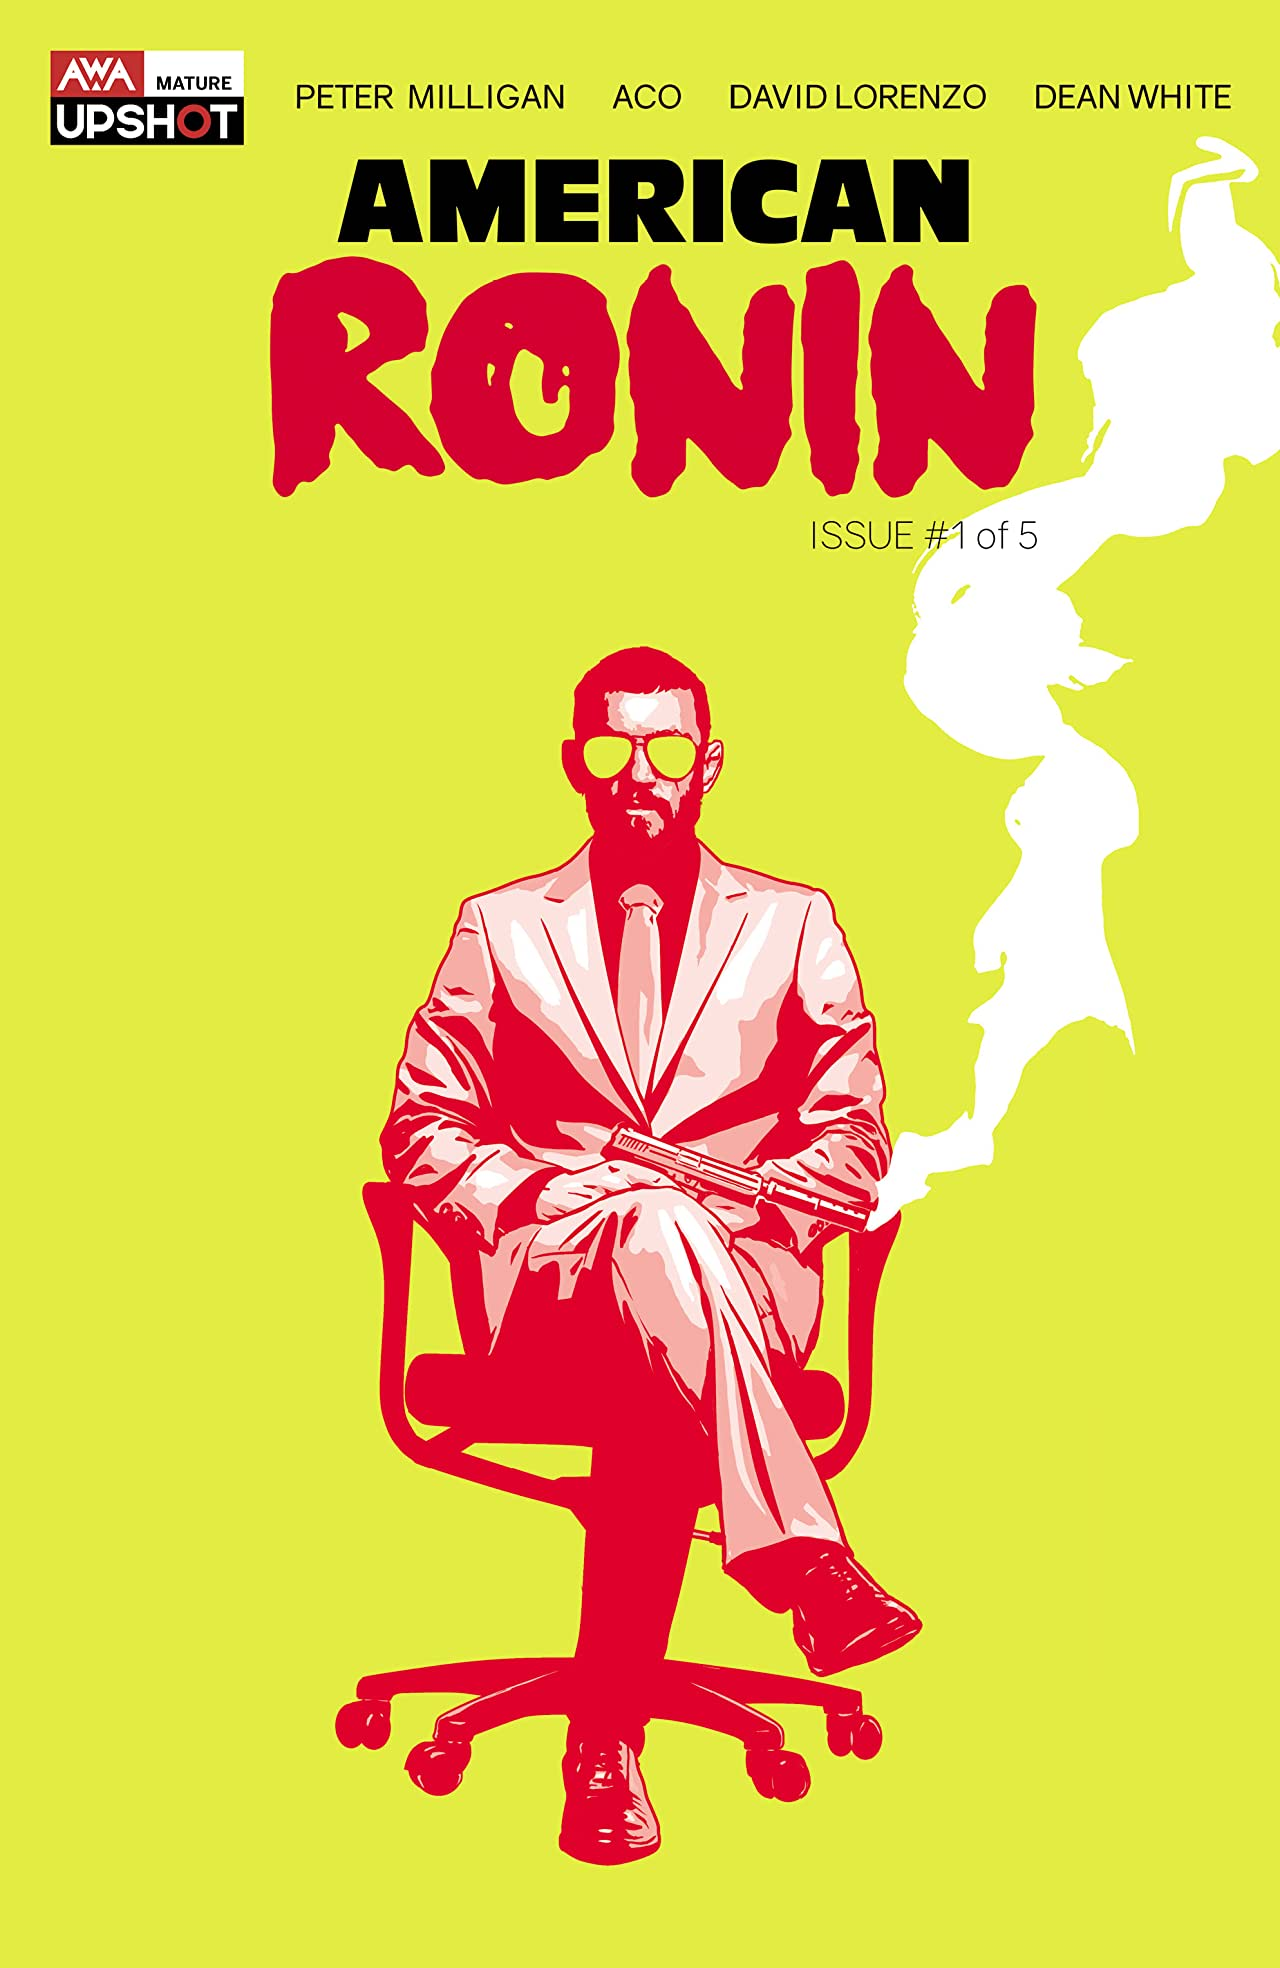 American Ronin #1 (of 5)